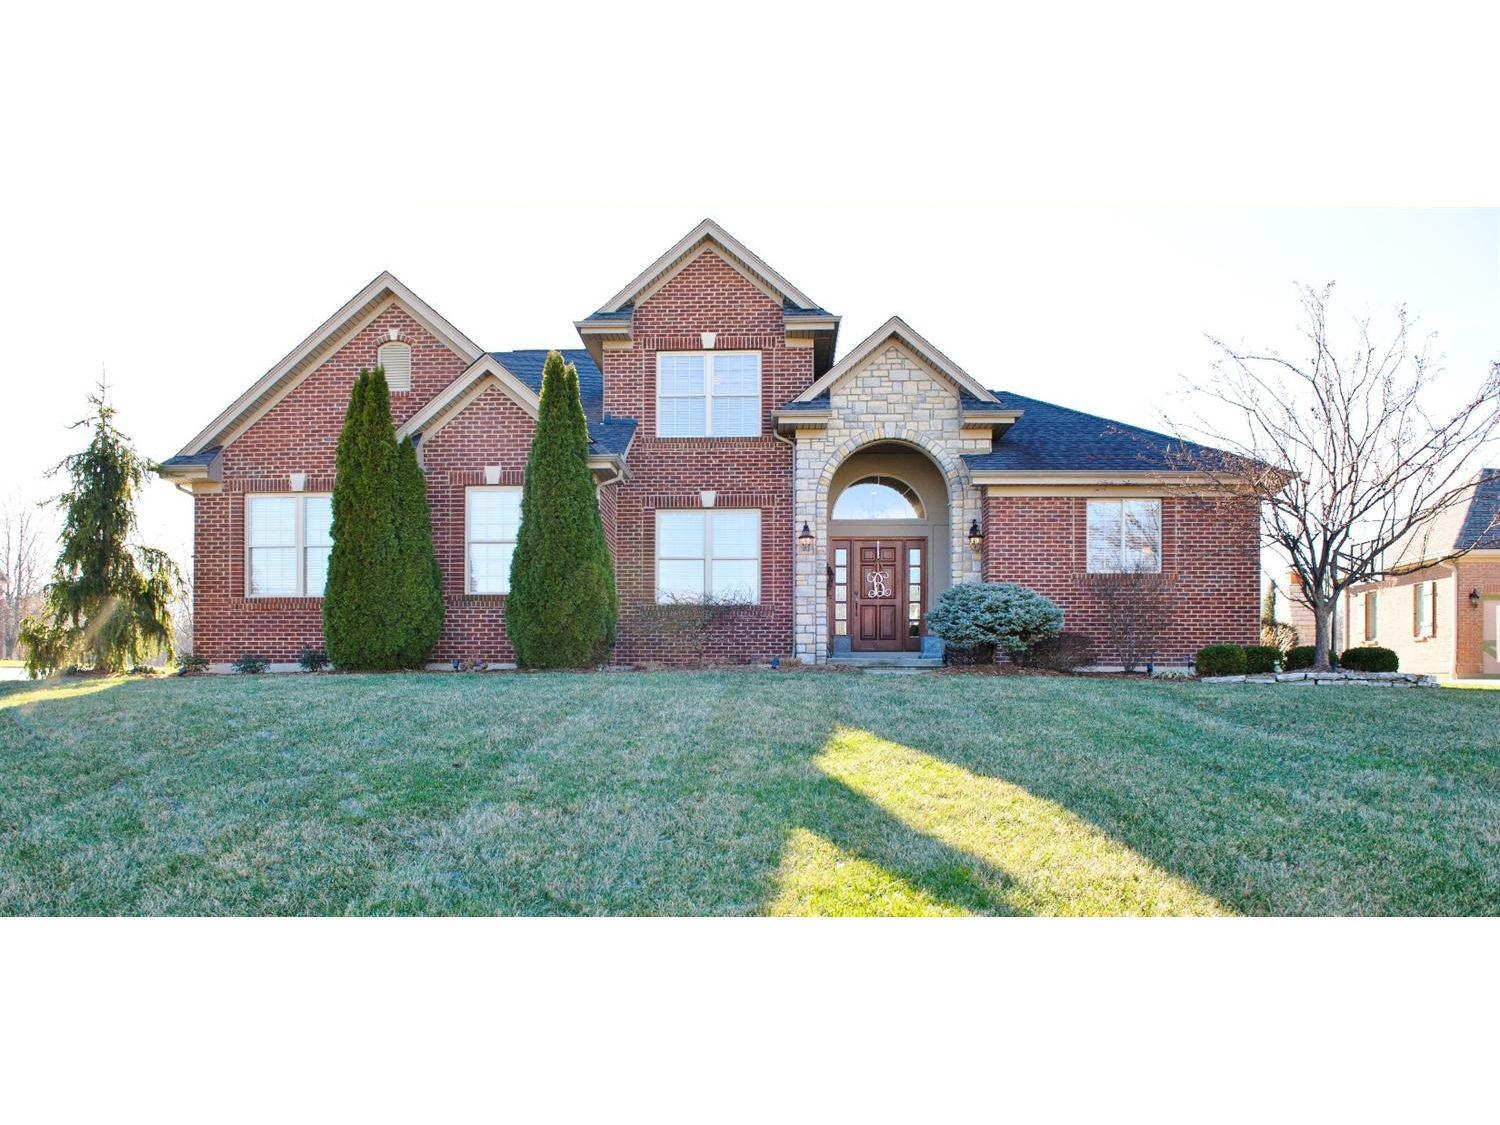 6521 Greenoak Drive, Green Twp, OH 45248